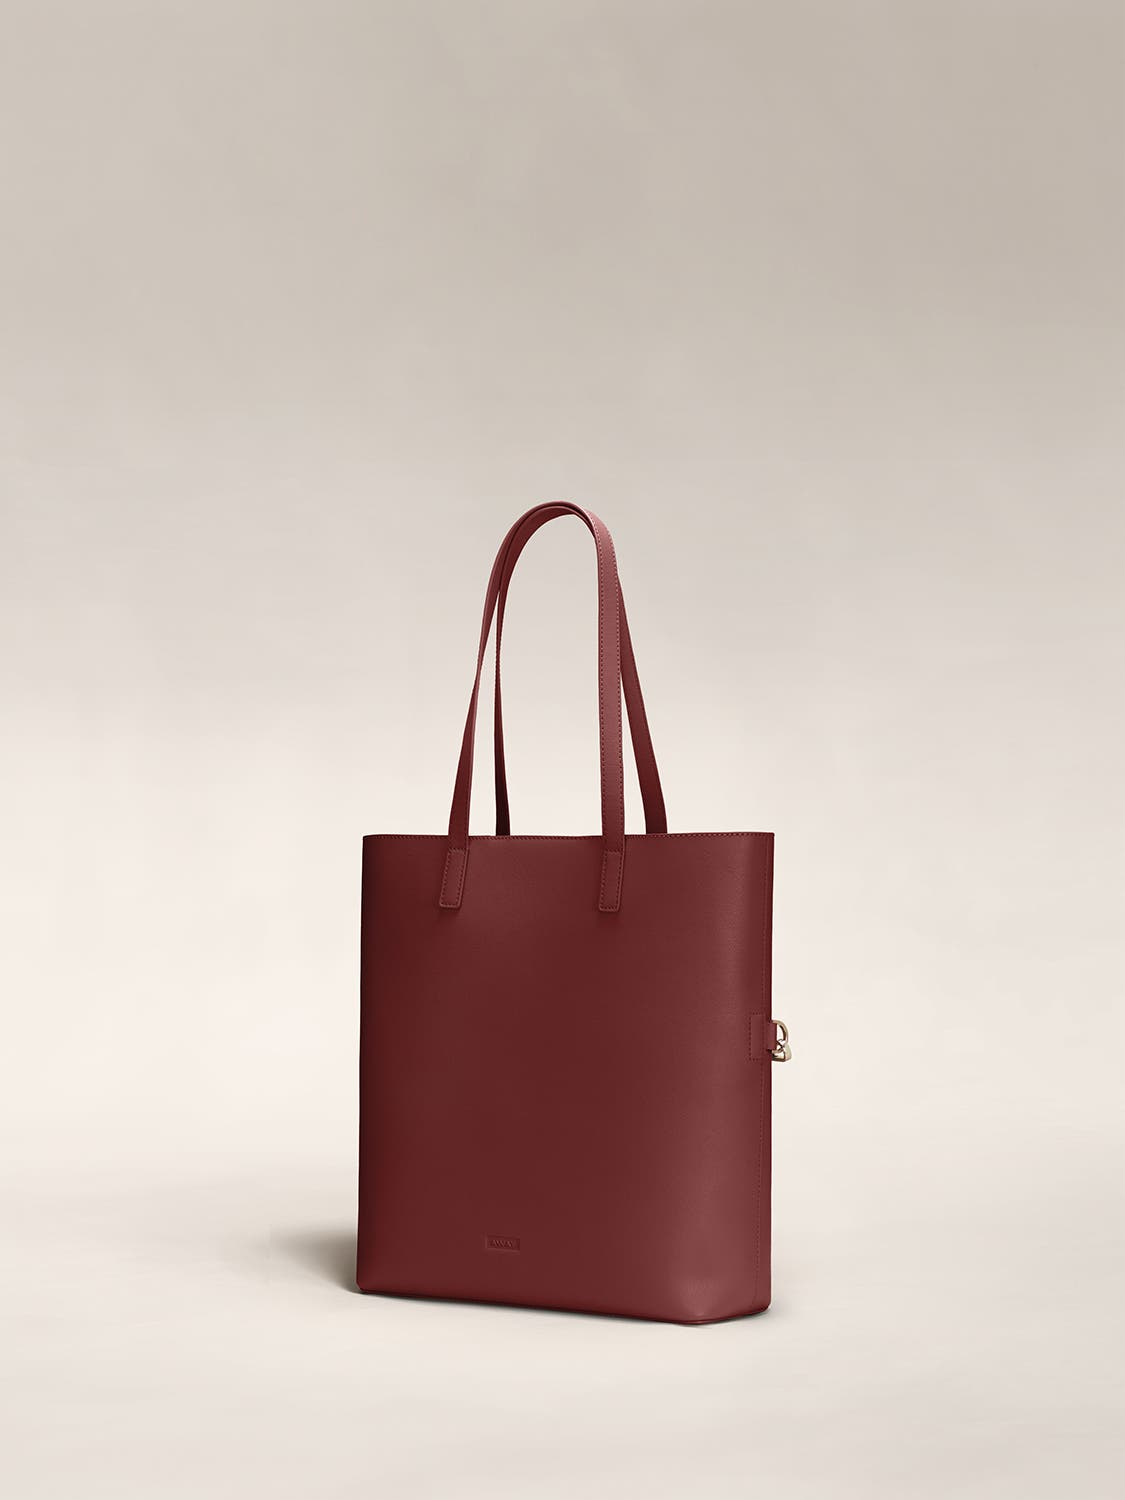 Angled view of a ruby red leather tote travel bag in leather.